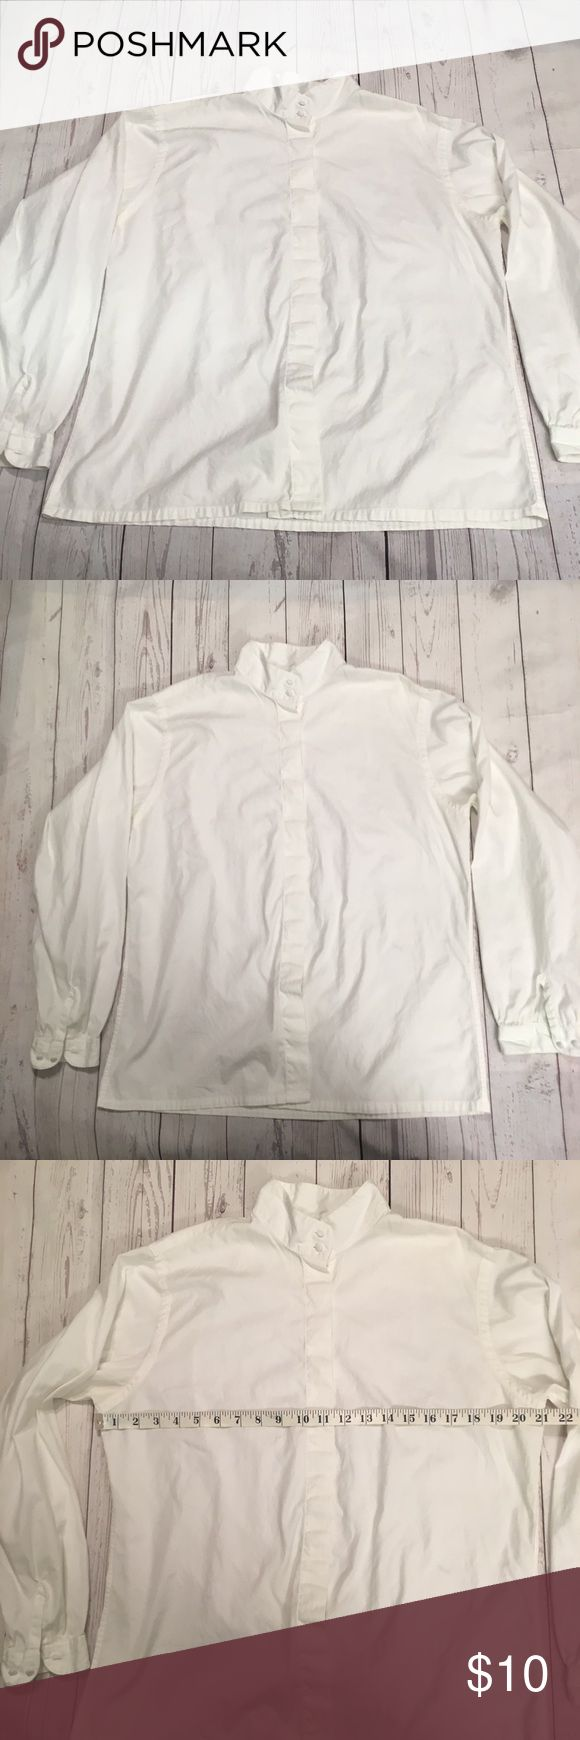 """Lands End Womens Button Down 14 White XL Oxford This listing is for a women's white button down shirt by Lands End. It is a size 14.  Measurements: (laid flat)  Chest (underarm to underarm):  21""""  Length (shoulder to bottom hem):  25""""  Sleeve length: 23""""  There is a small green stain on the left sleeve cuff (see photos). Lands' End Tops Button Down Shirts"""